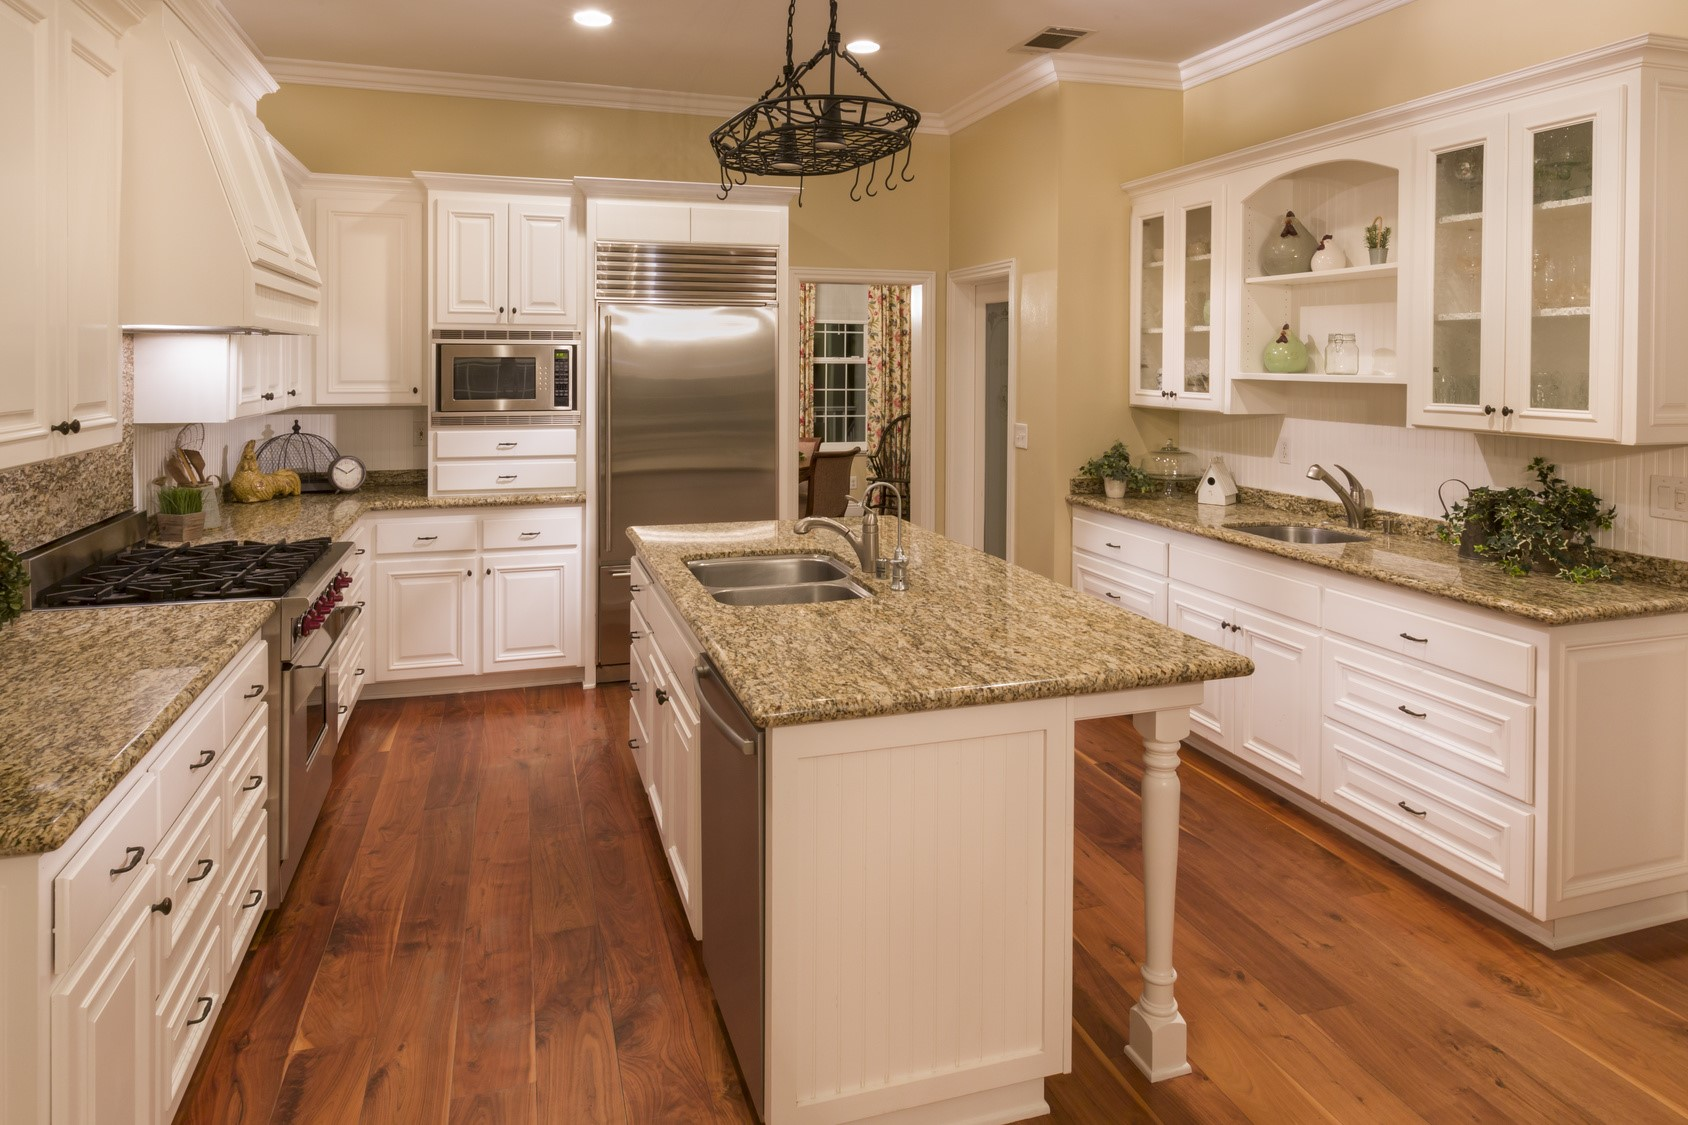 Homes Of Distinction Realty Sharon Ma Real Estate